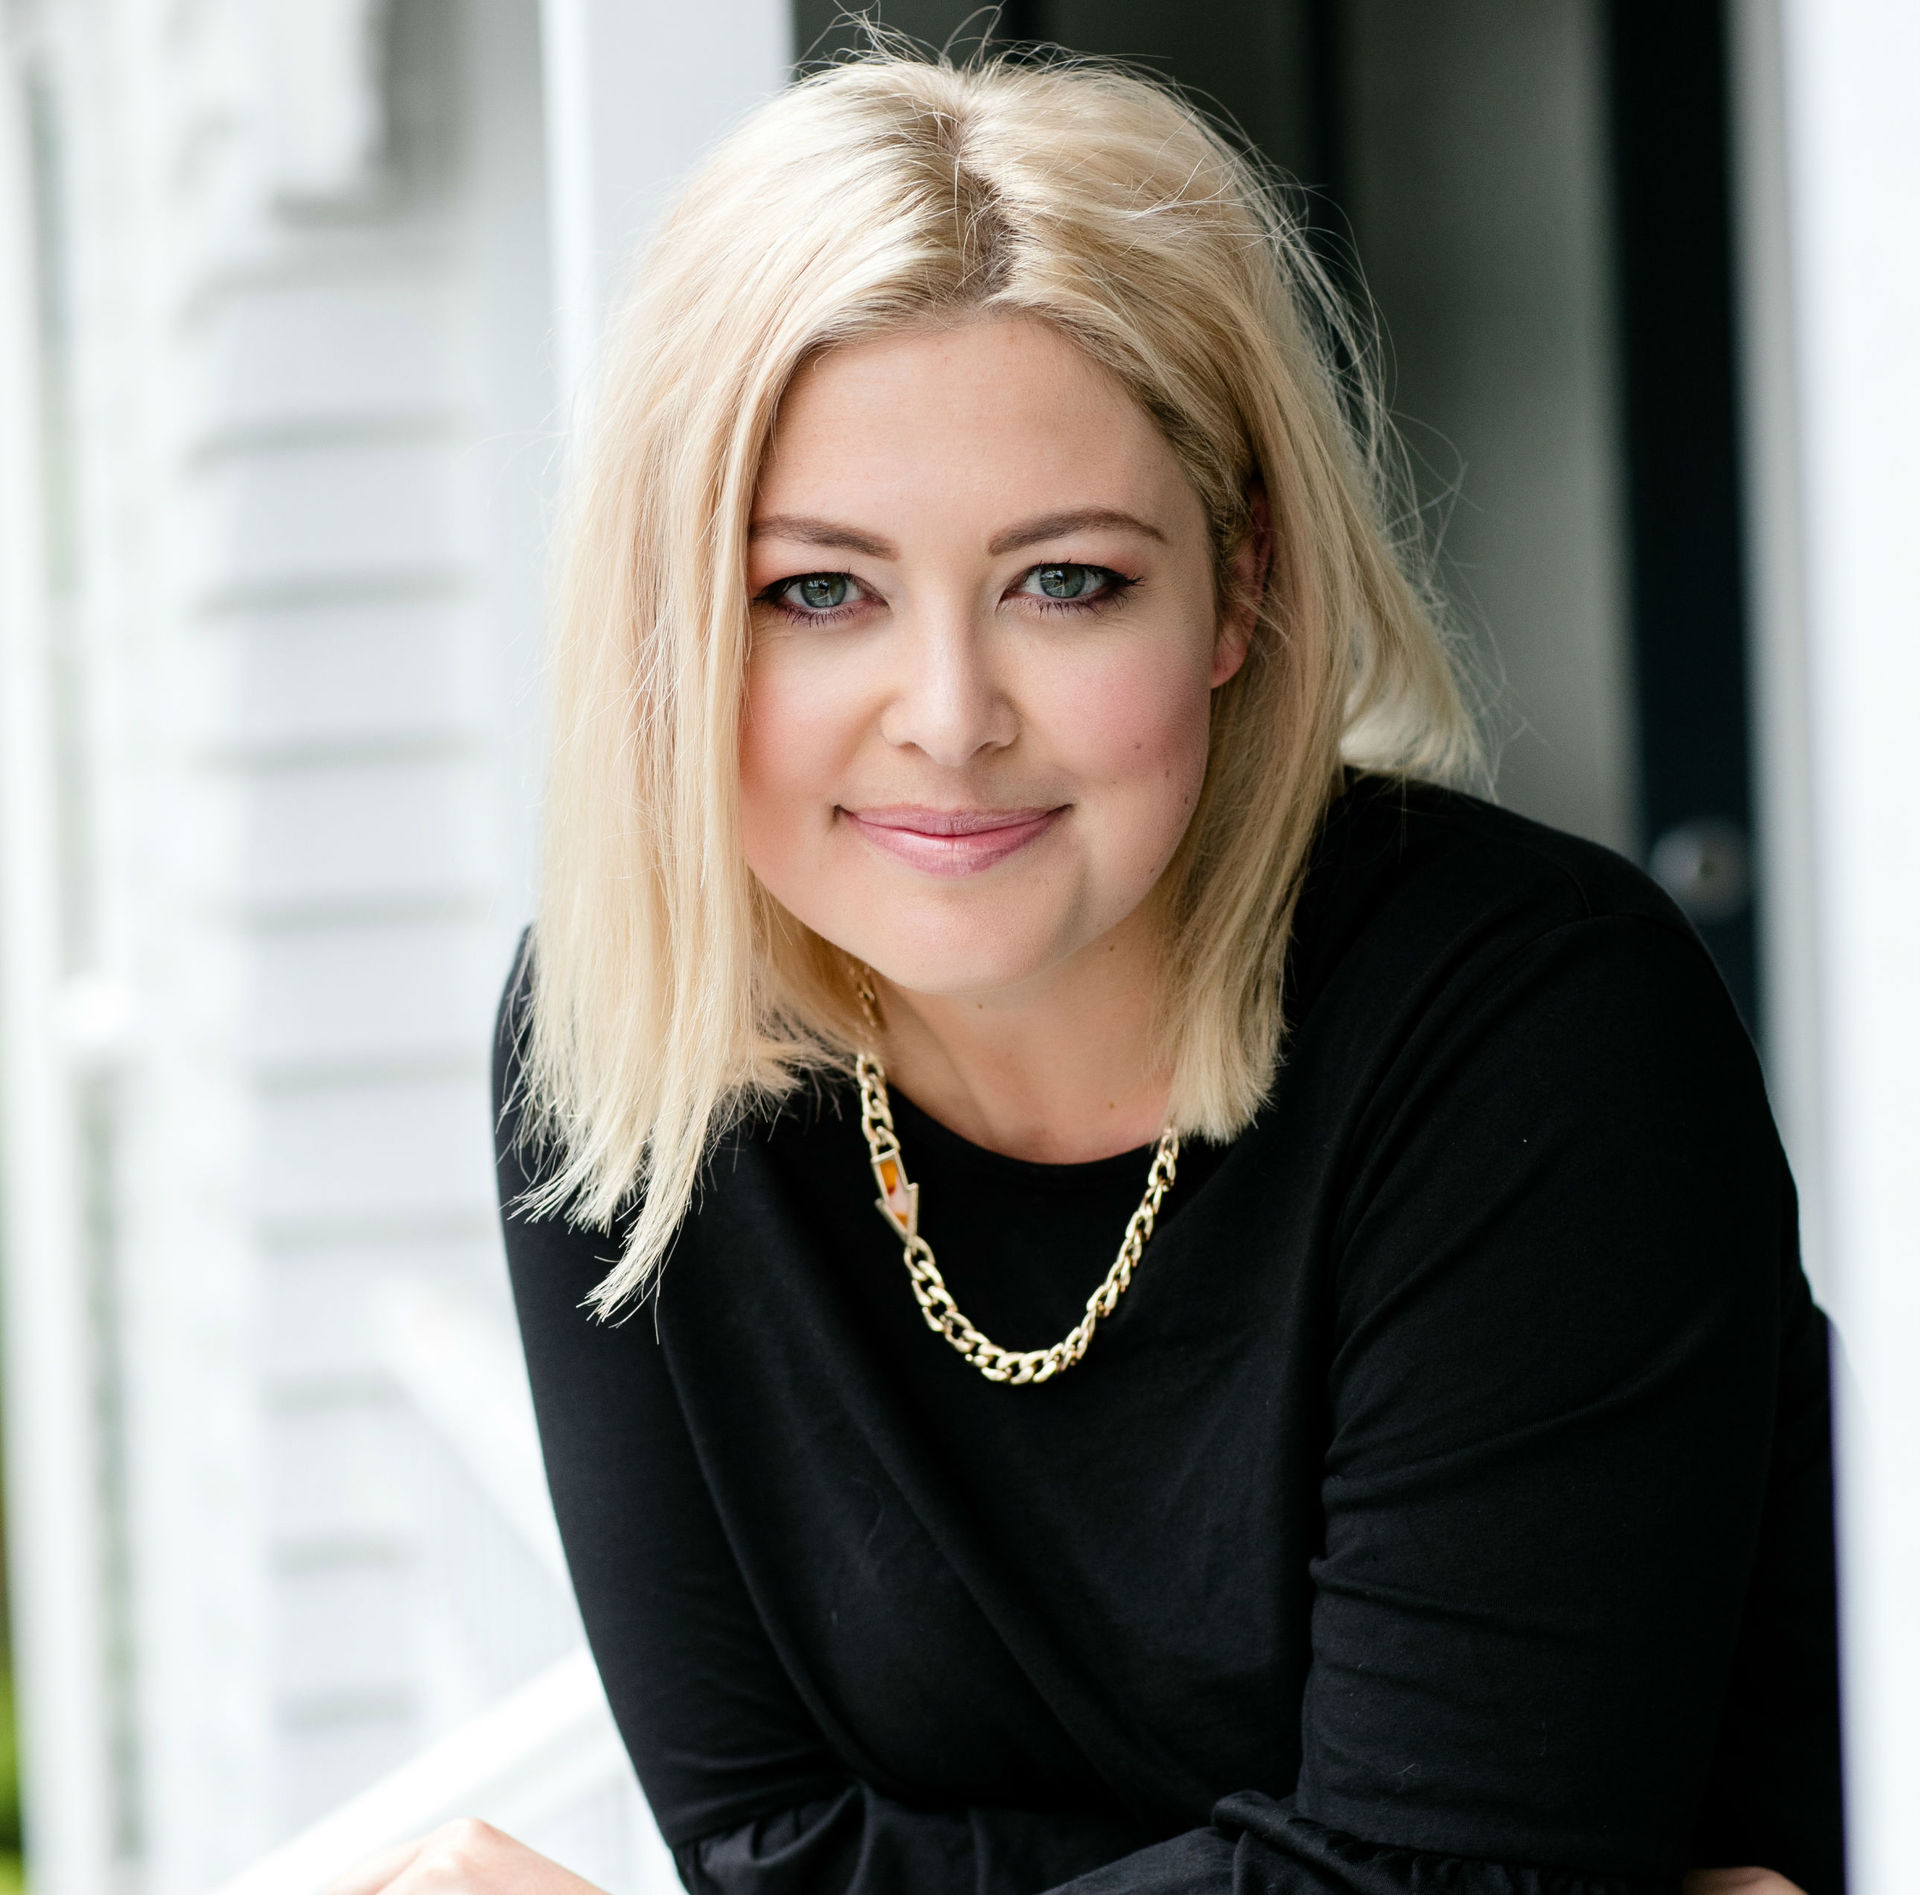 Sarah Gandy diagnosed with breast cancer